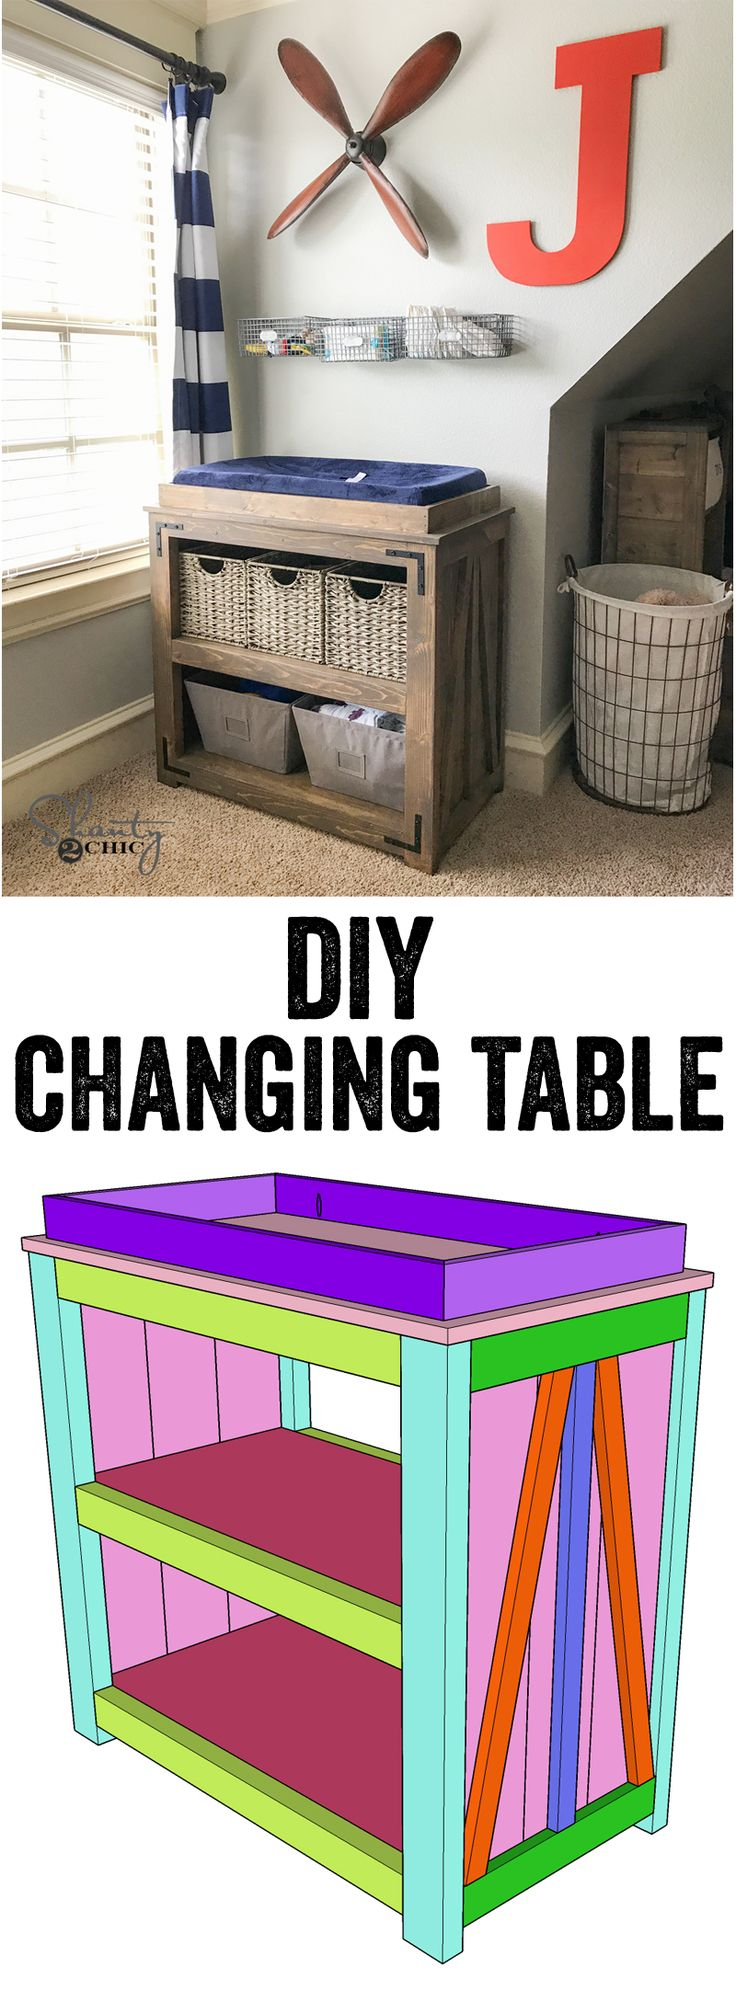 Baby cribs nashville tn - 17 Best Ideas About Baby Furniture On Pinterest Nursery Furniture Baby Cribs And Modern Baby Bedding